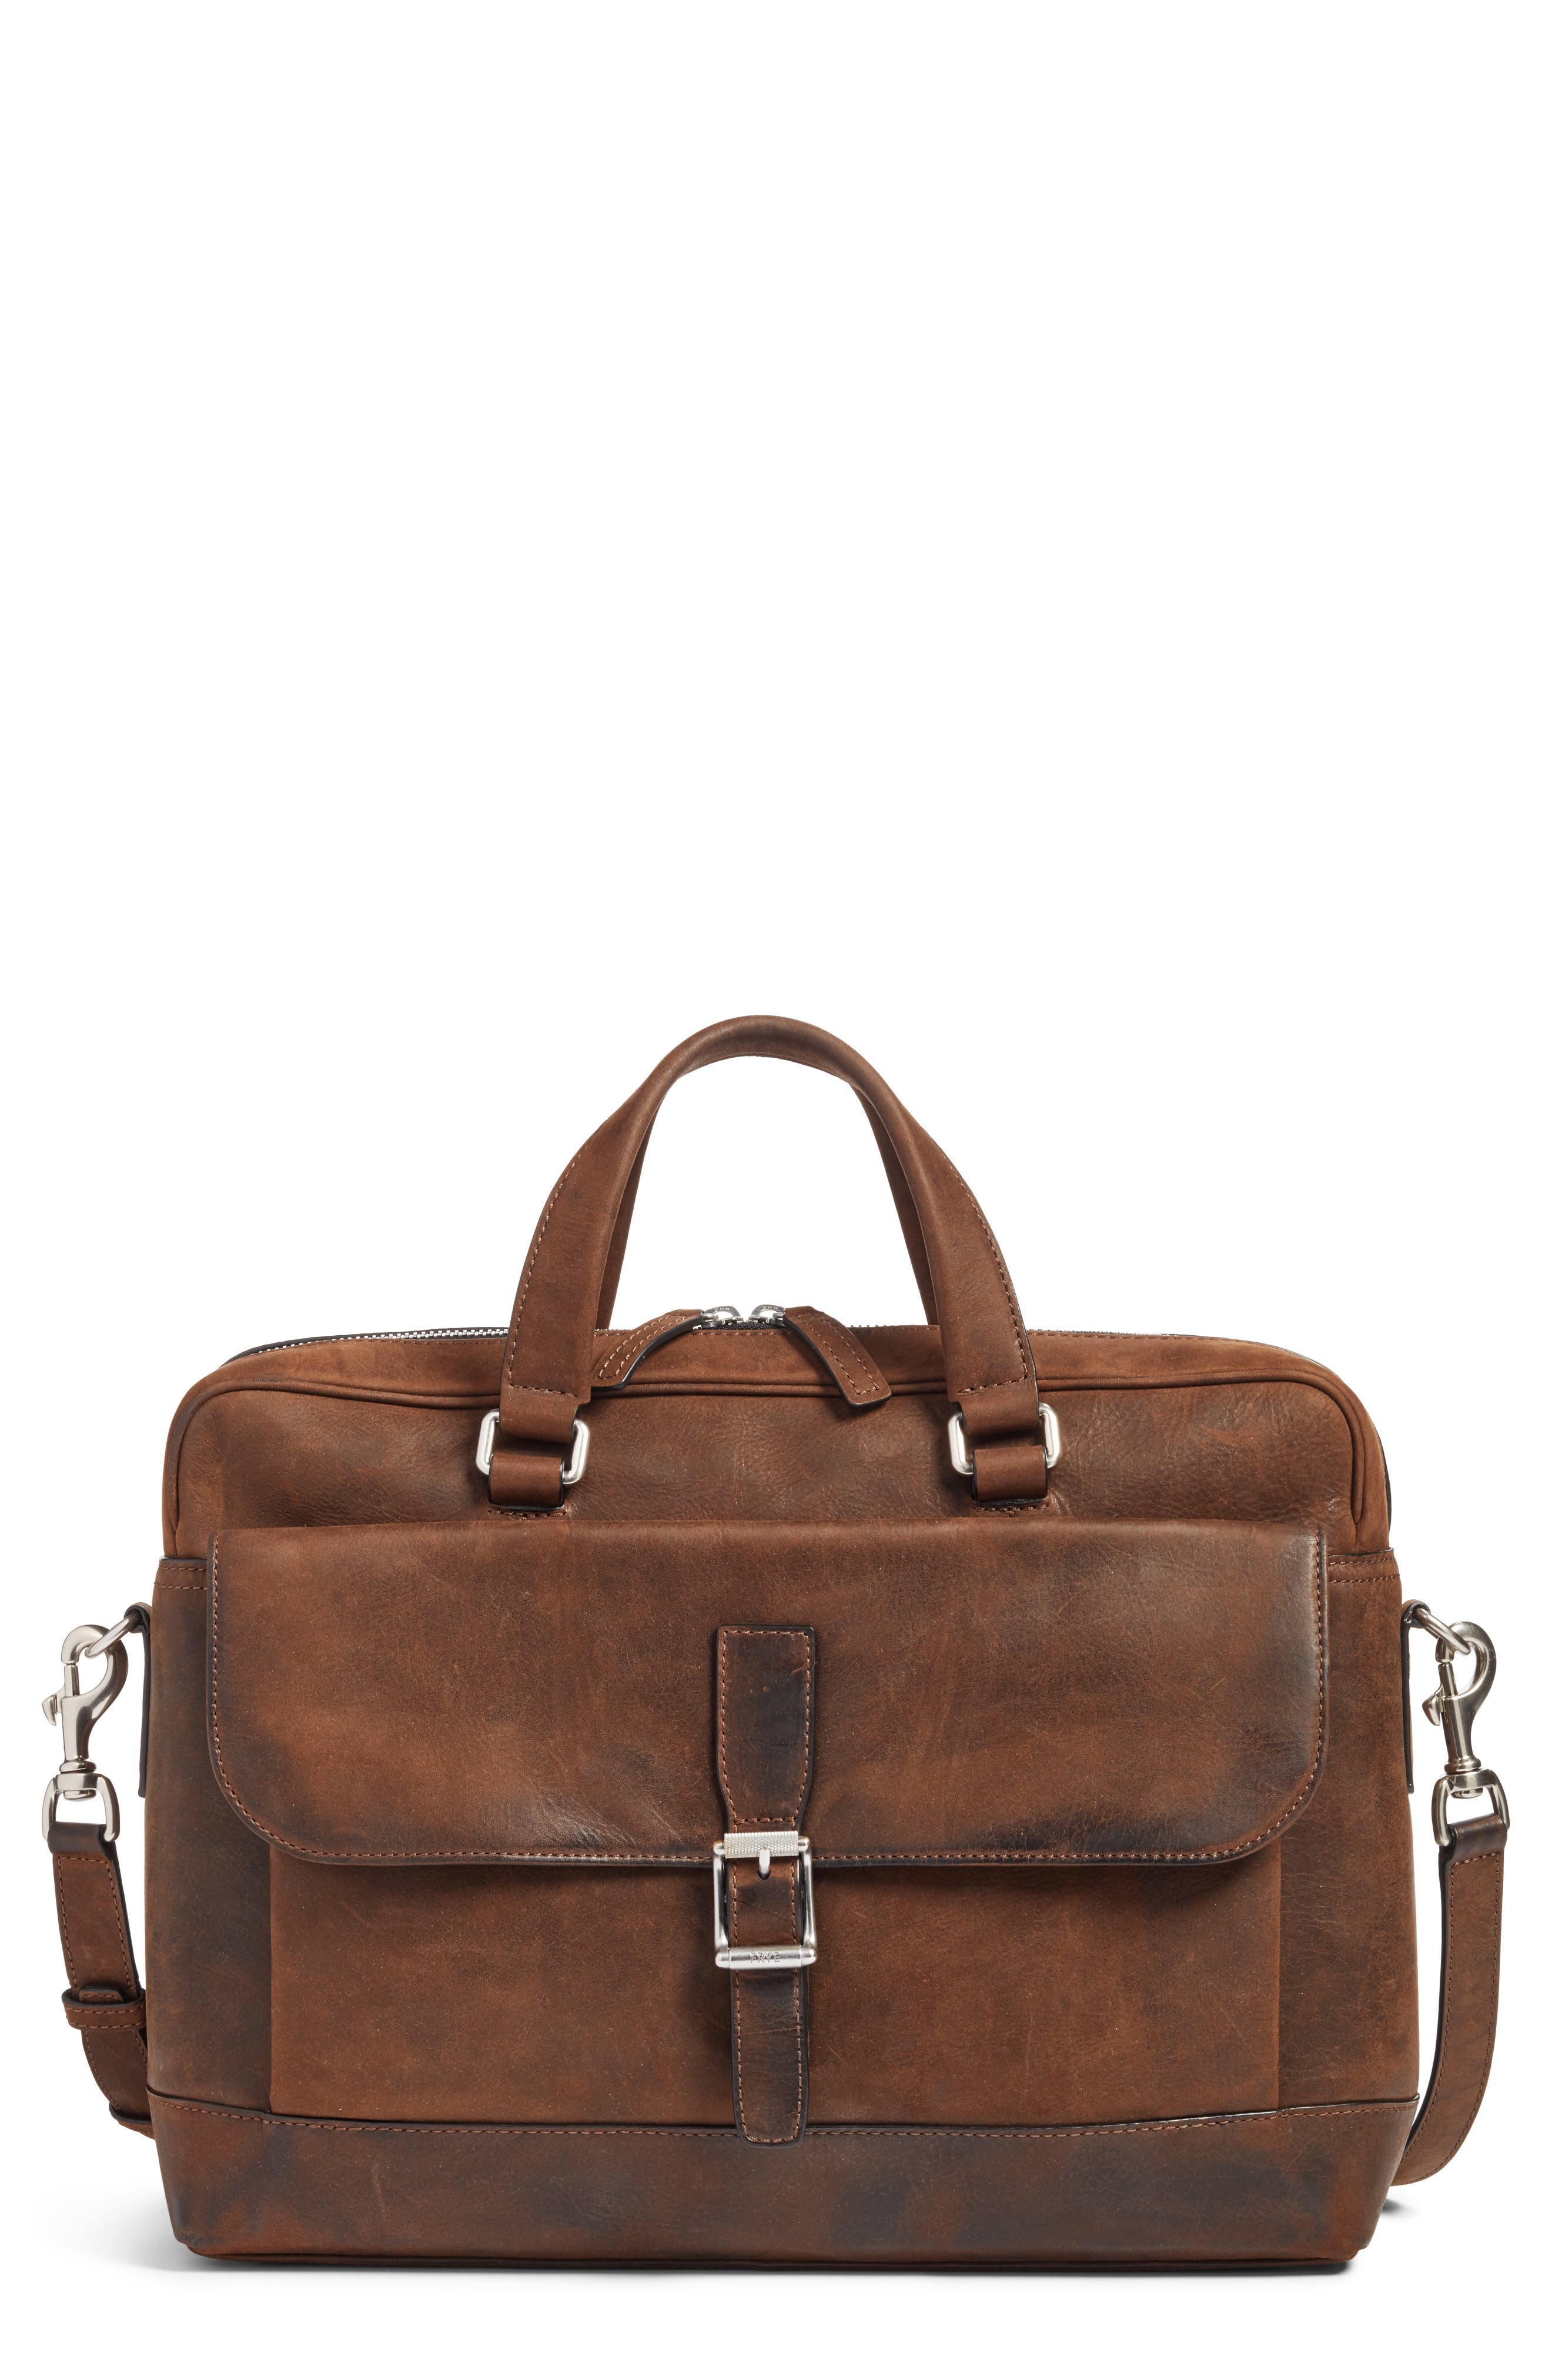 Oliver Leather Briefcase,                         Main,                         color, Dark Brown